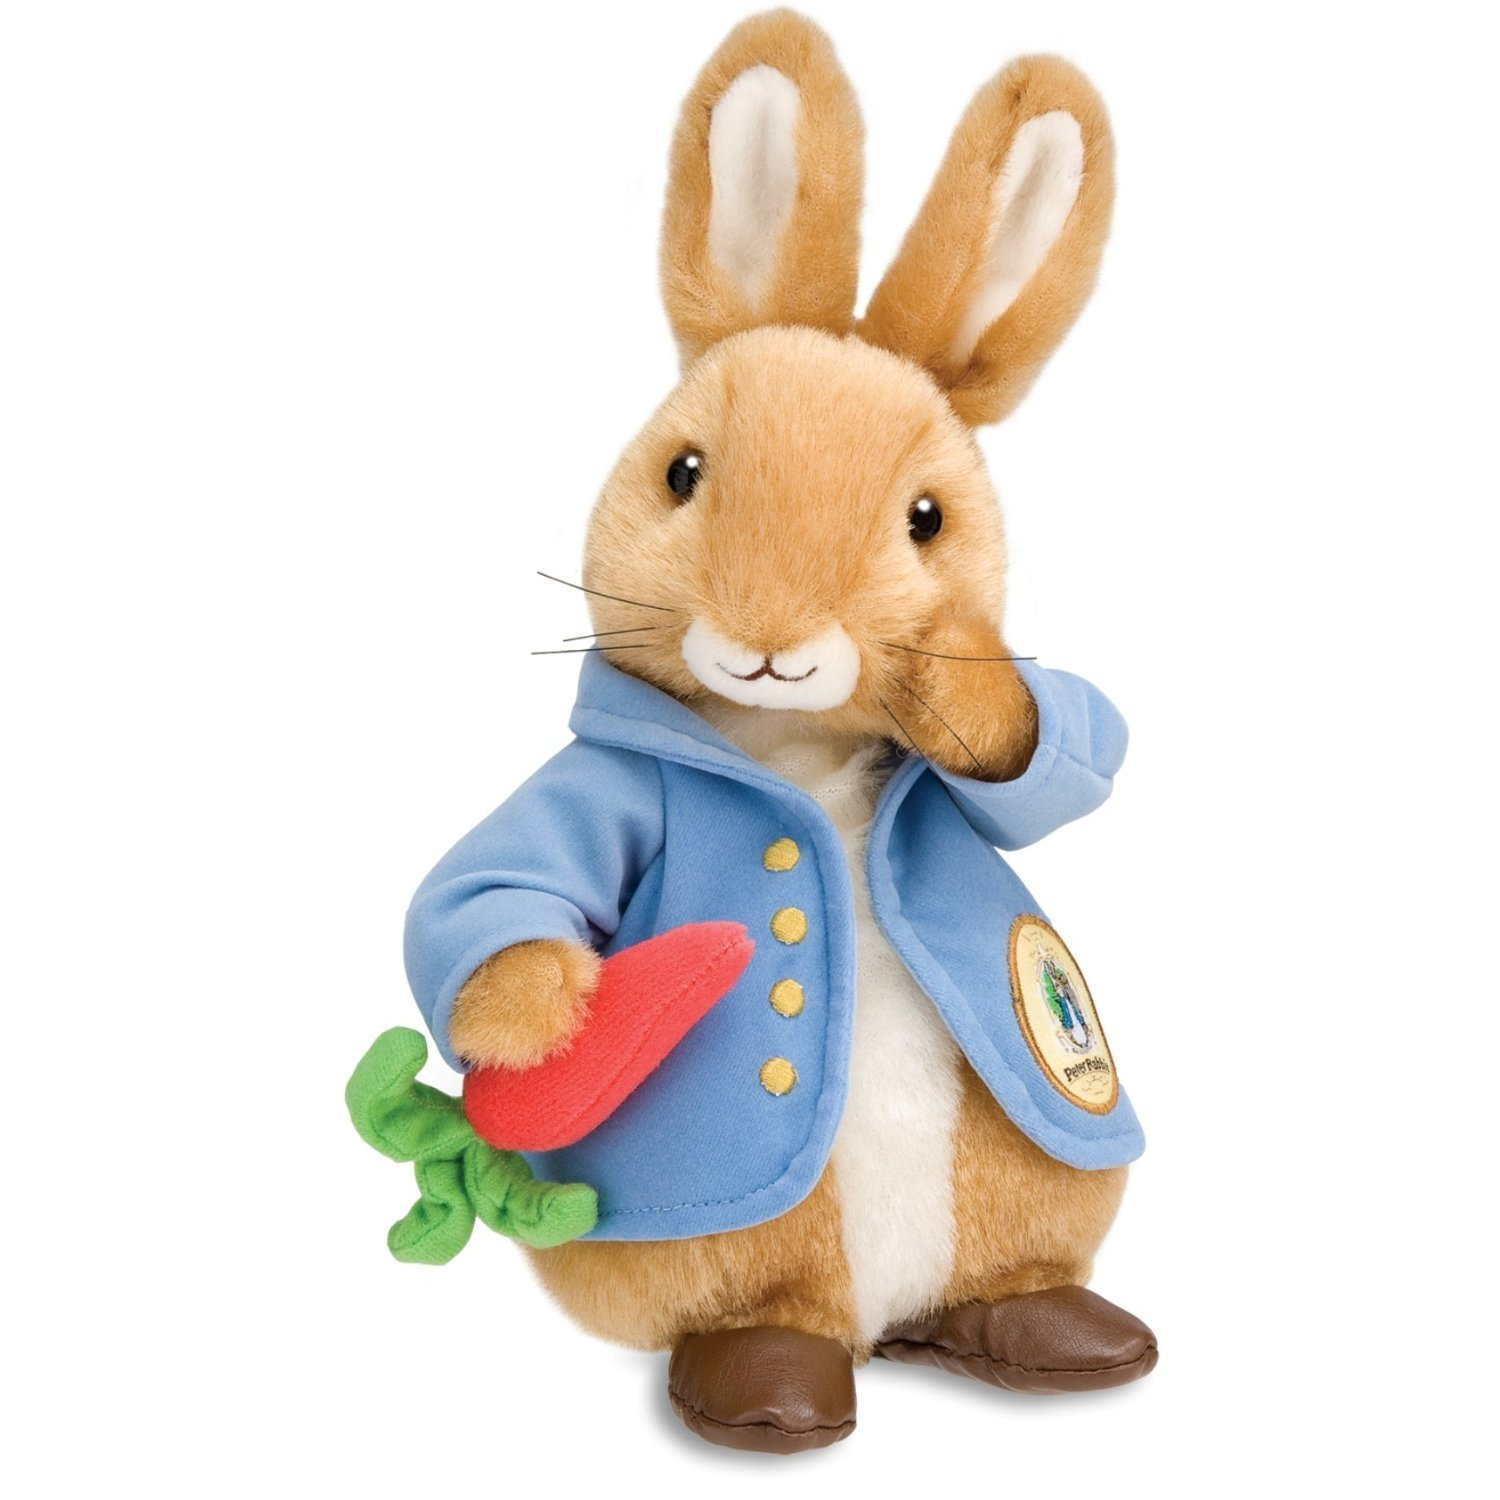 Rabbit Plush Toys SPA-018